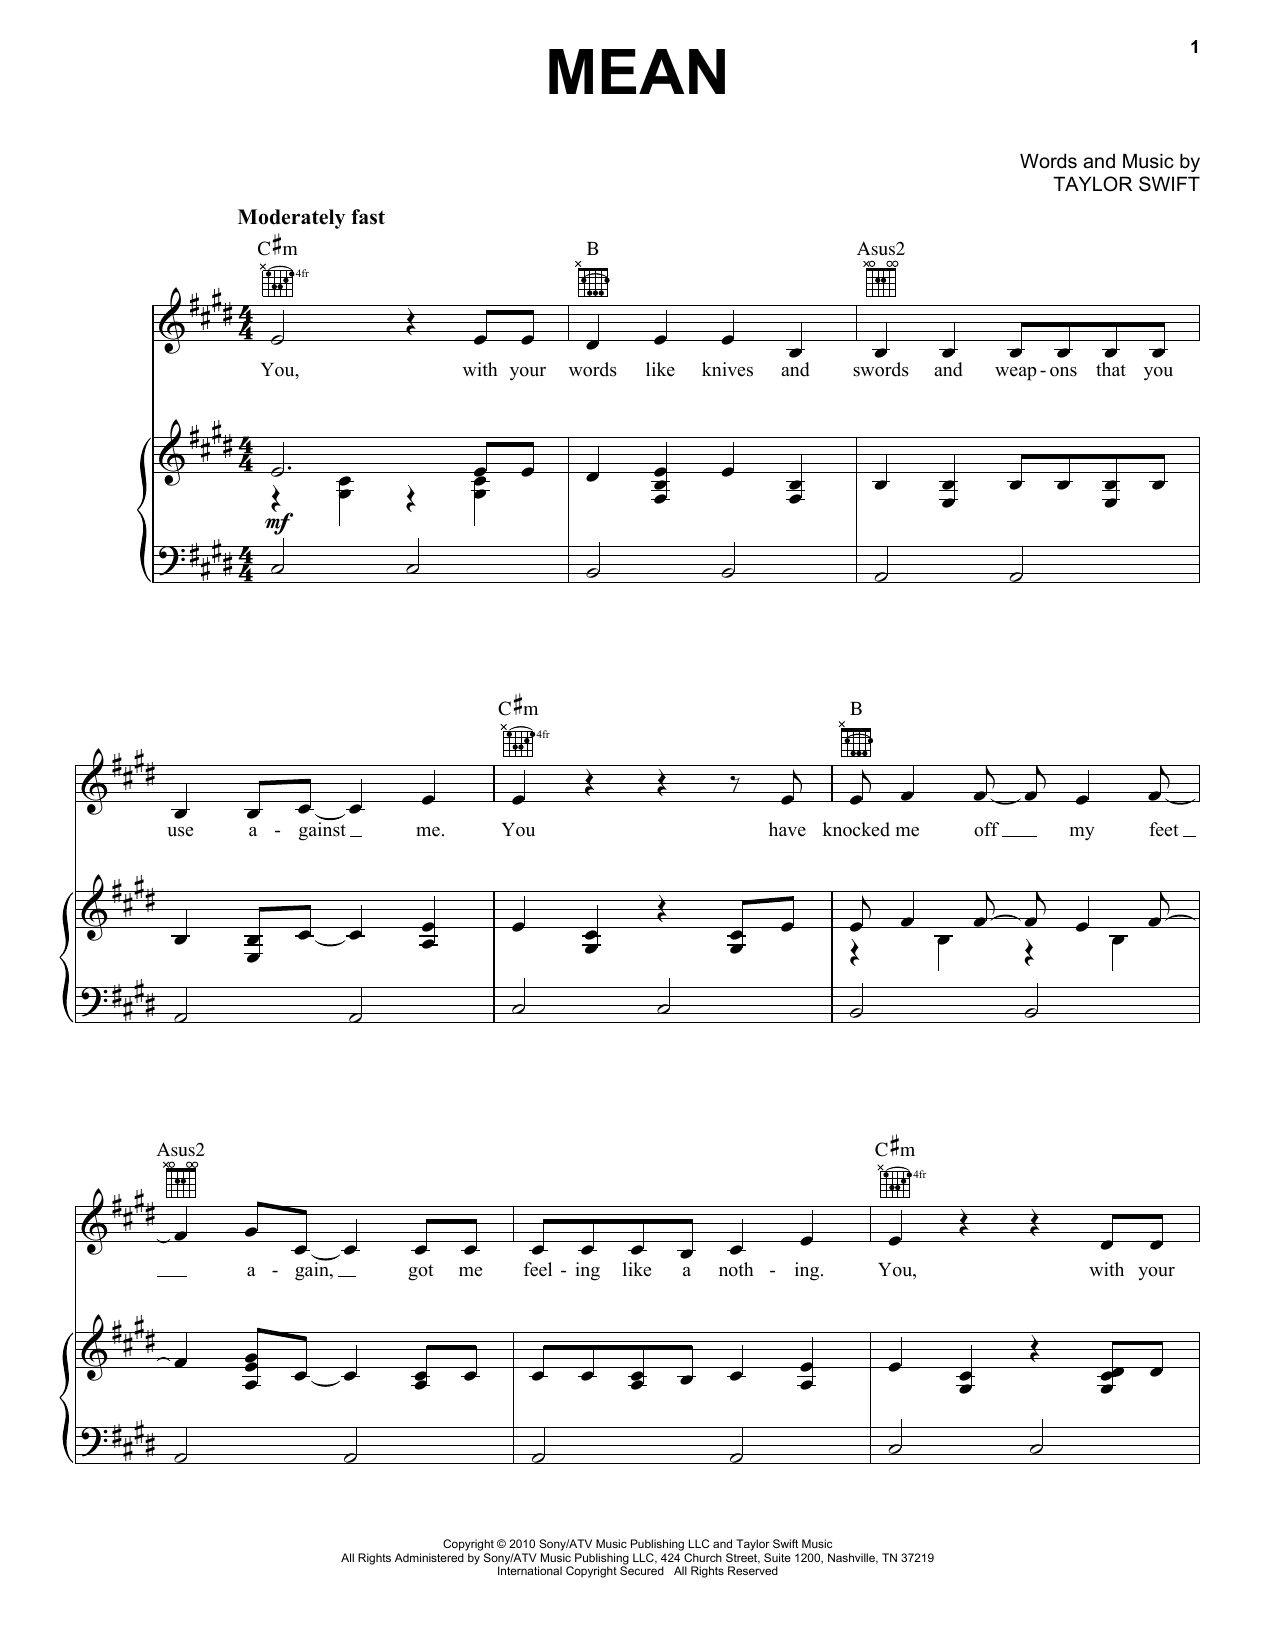 Taylor Swift Hits (complete set of parts) sheet music for voice, piano or guitar by Taylor Swift, Liz Rose, Max Martin and Shellback. Score Image Preview.